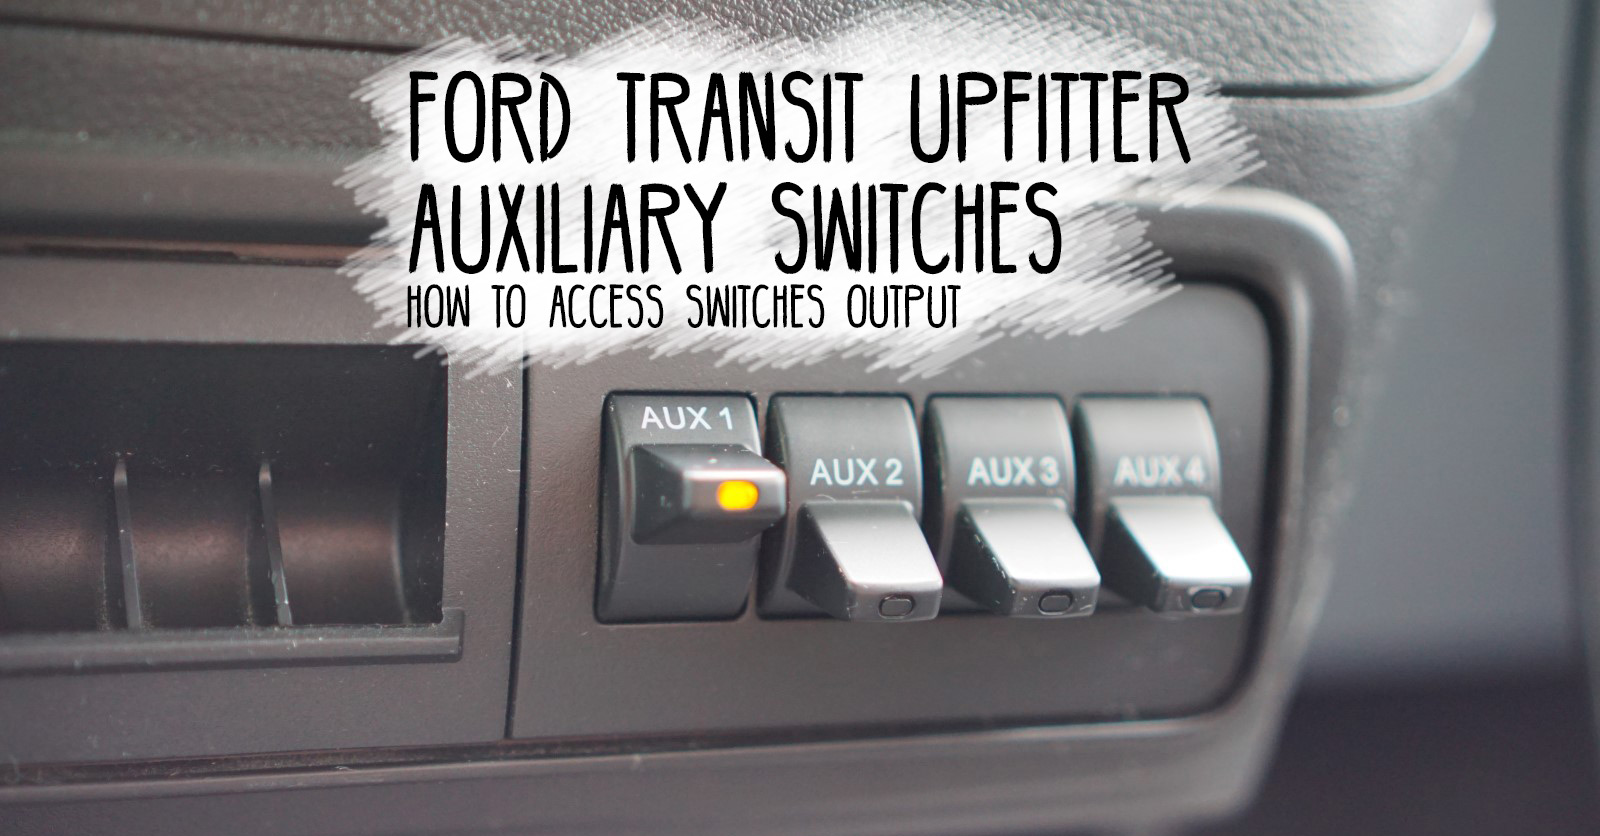 Ford Transit Upfitter Auxiliary Switches